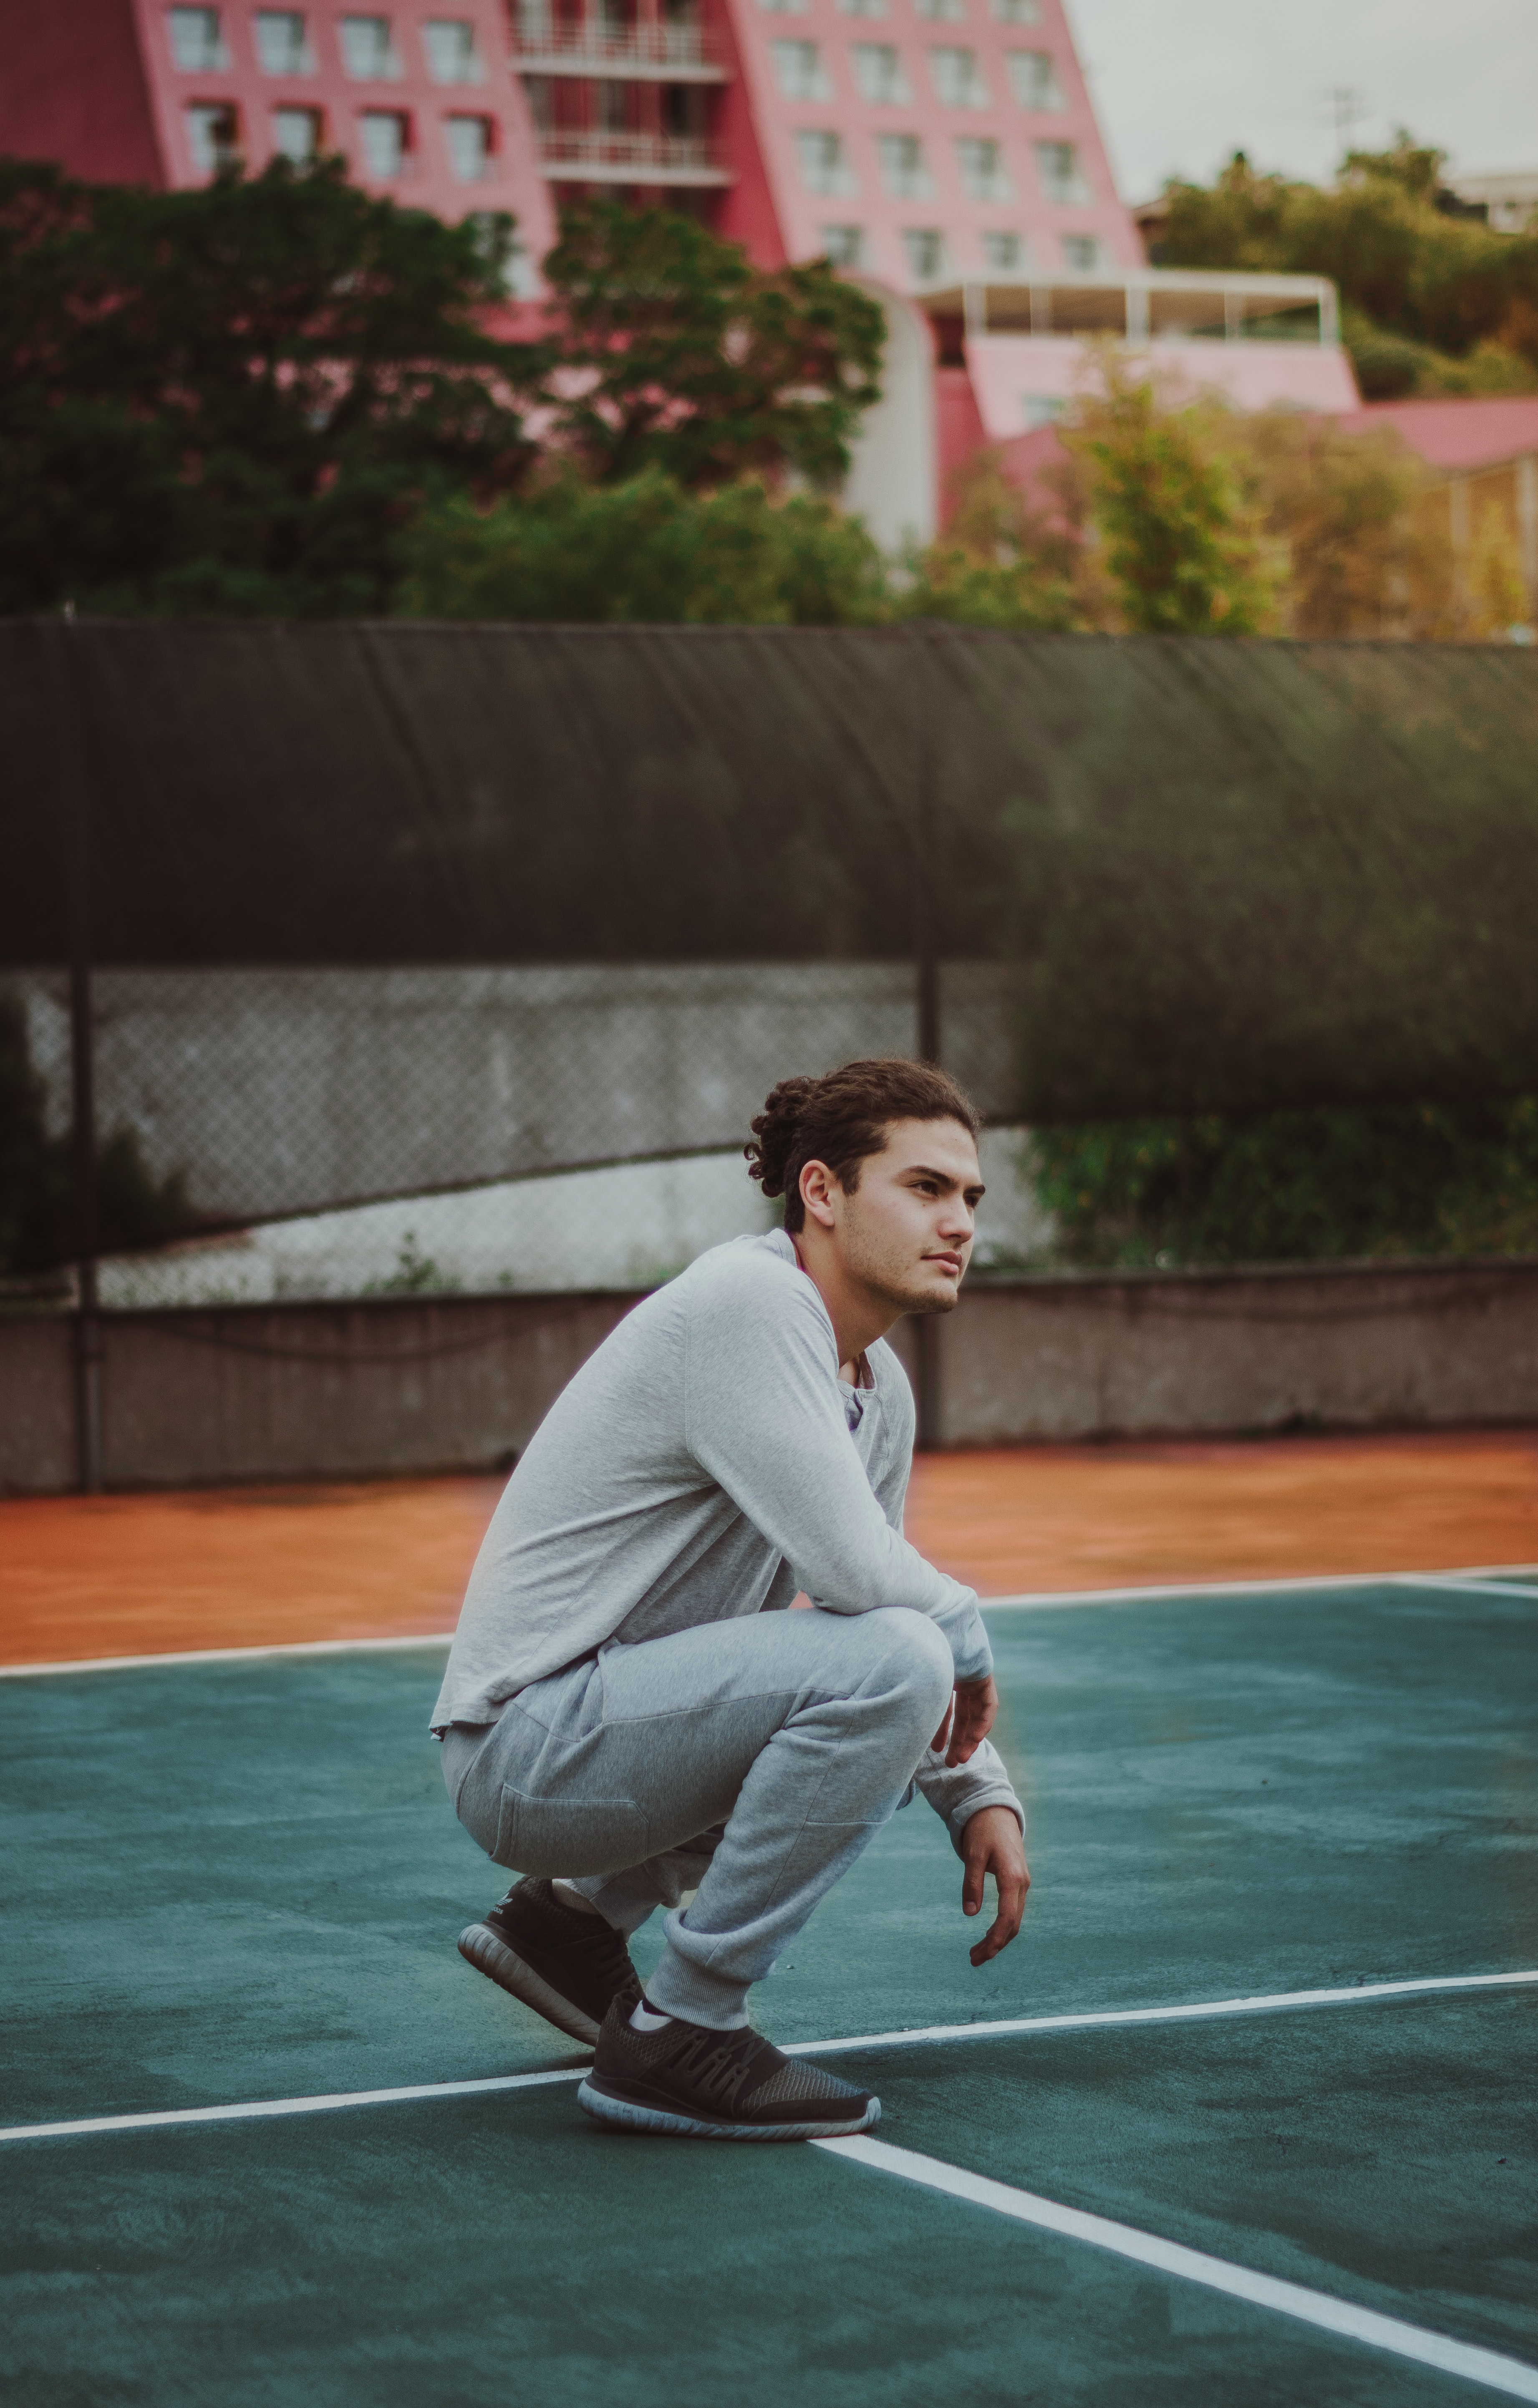 man squatting on court during day